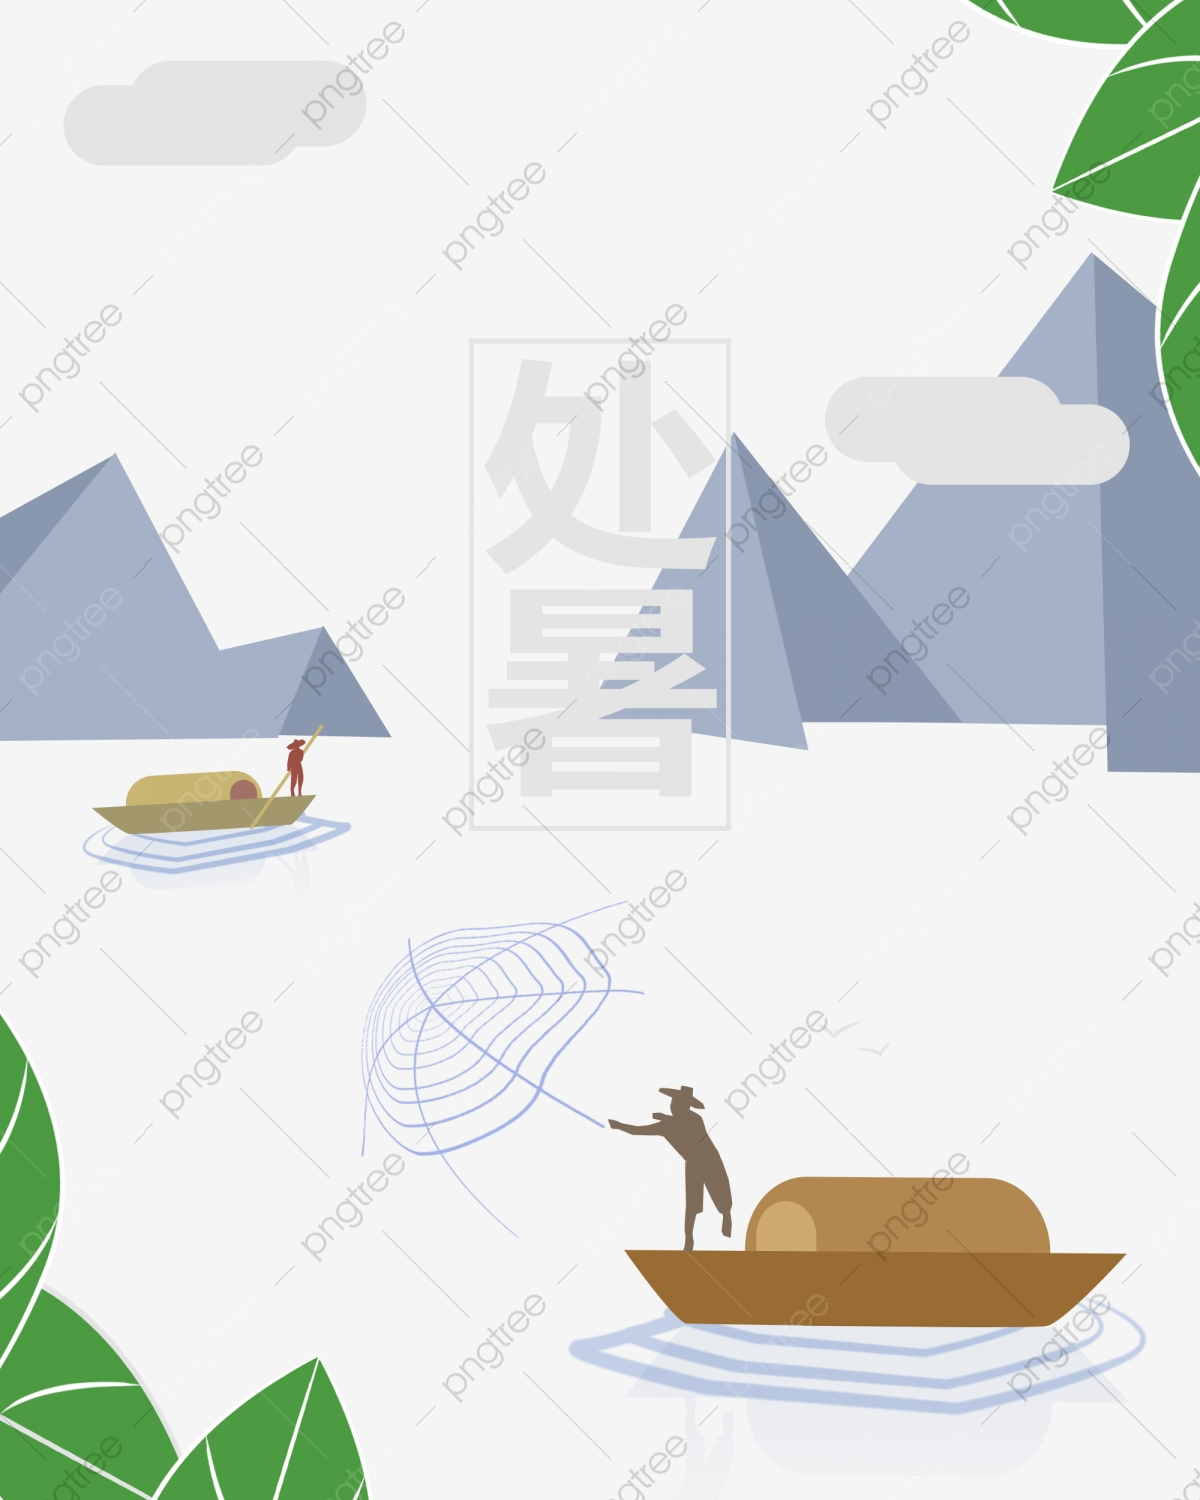 Fisherman Fishing Cartoon The Man Fishing Png Transparent Clipart Image And Psd File For Free Download